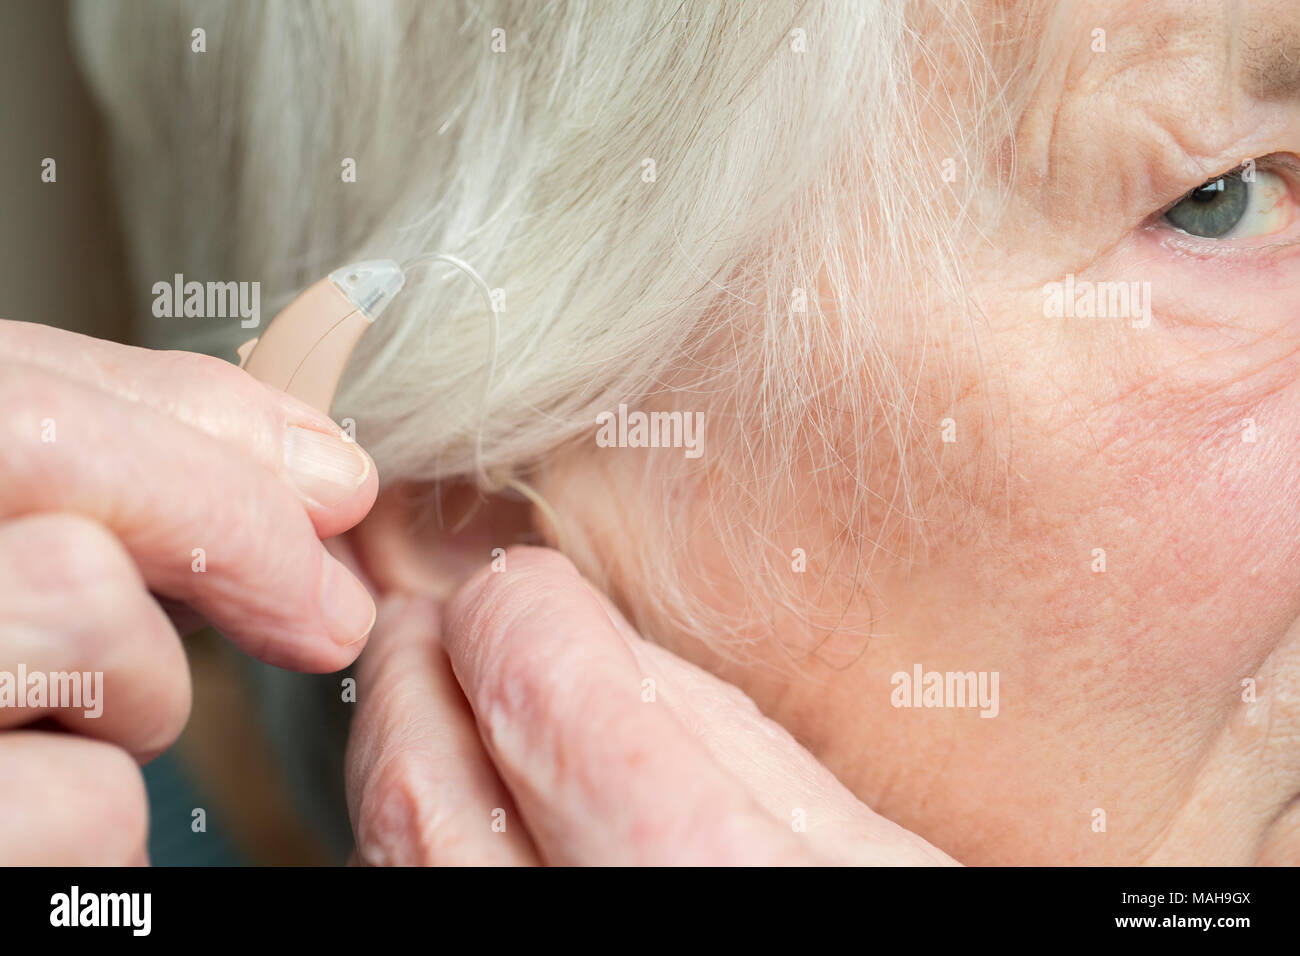 Close Up Of Senior Woman Putting In Hearing Aid - Stock Image